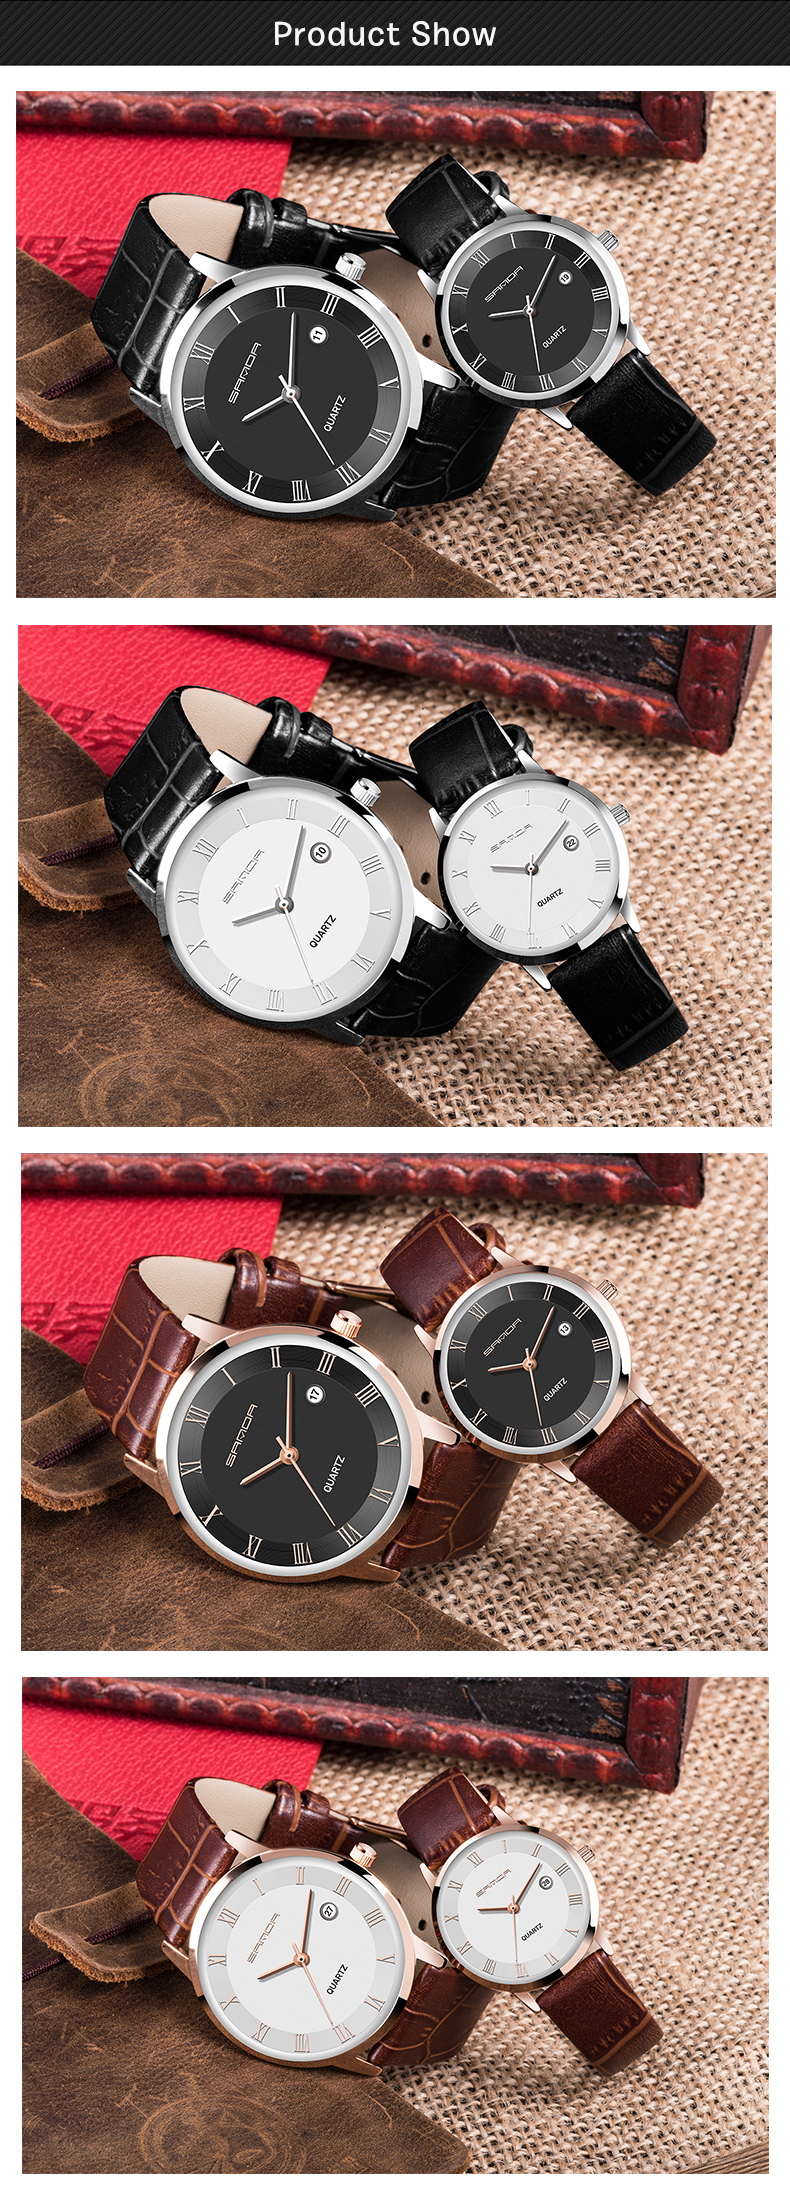 SANDA P188 Leather Men Watch